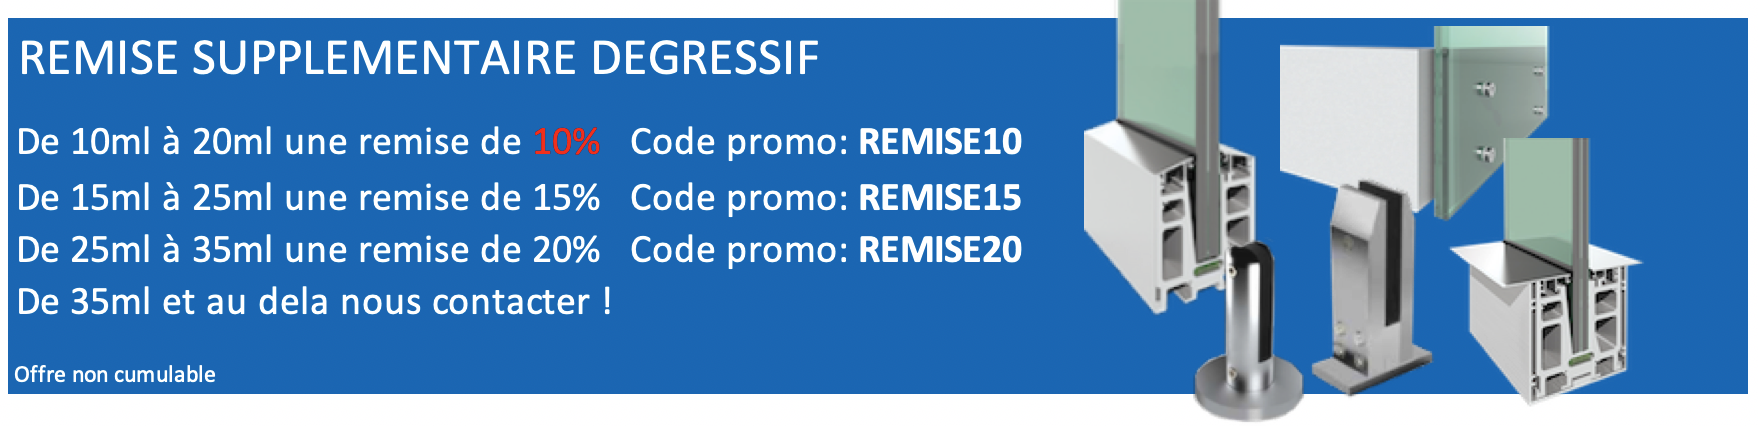 offre-degressif.png